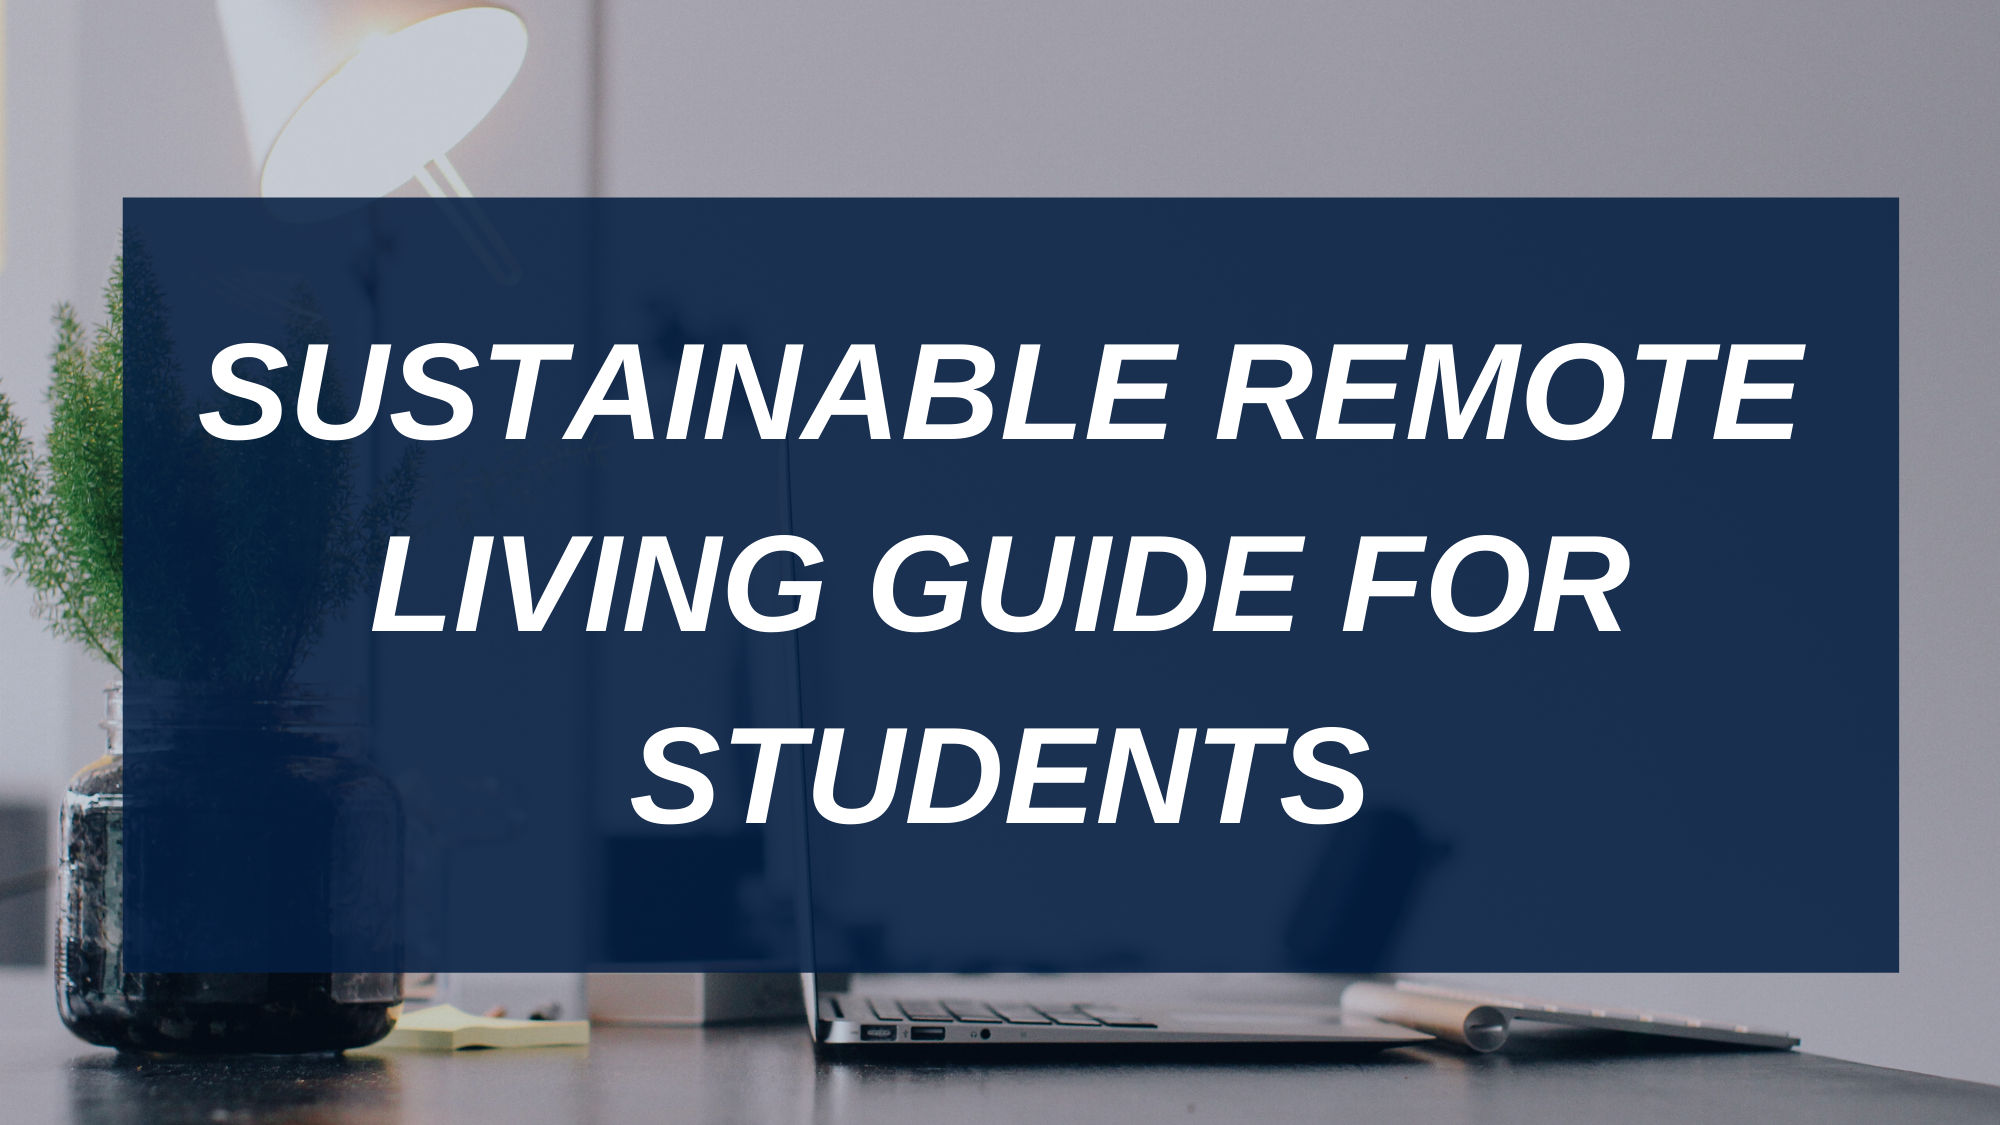 SUSTAINABLE REMOTE LIVING GUIDE FOR STUDENTS (1)